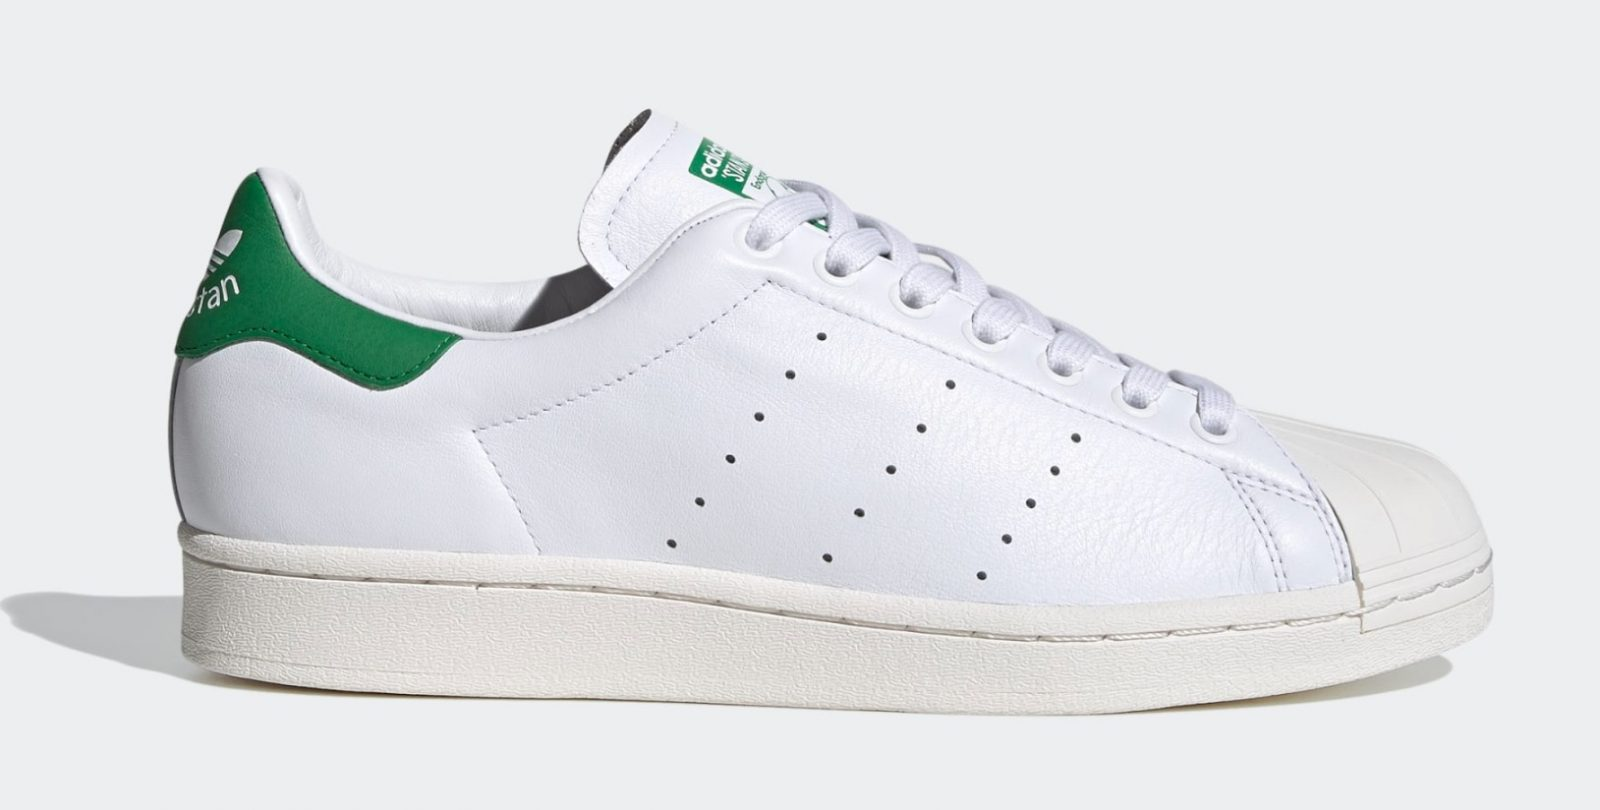 Introducing The Superstan, adidas' New, Contemporary Hyrbid Silhouette right